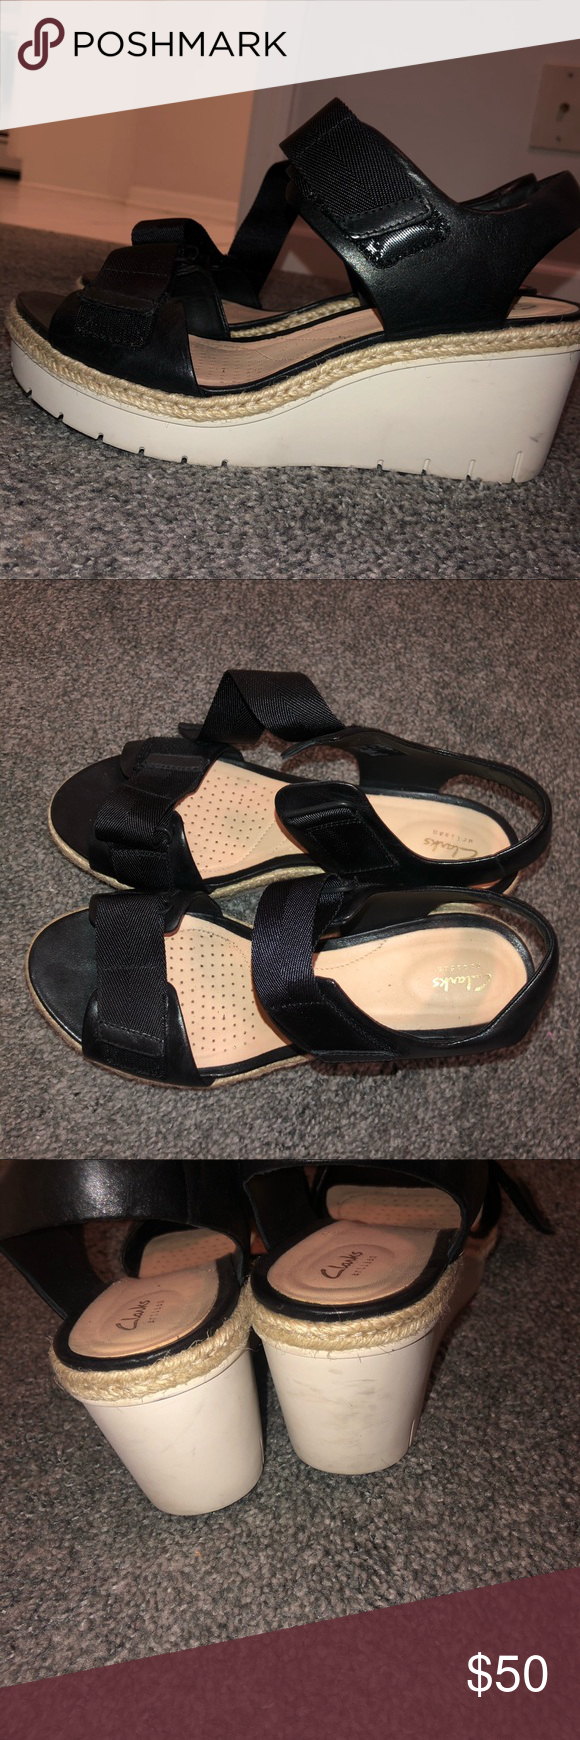 Clarks Leather Wedges Clarks Black Leather Wedges Rubber Sole Esparto Rope Around The Middle Adjustable Velcro Strap On Bottom And In 2020 Leather Wedges Clarks Womens Shoes Wedges